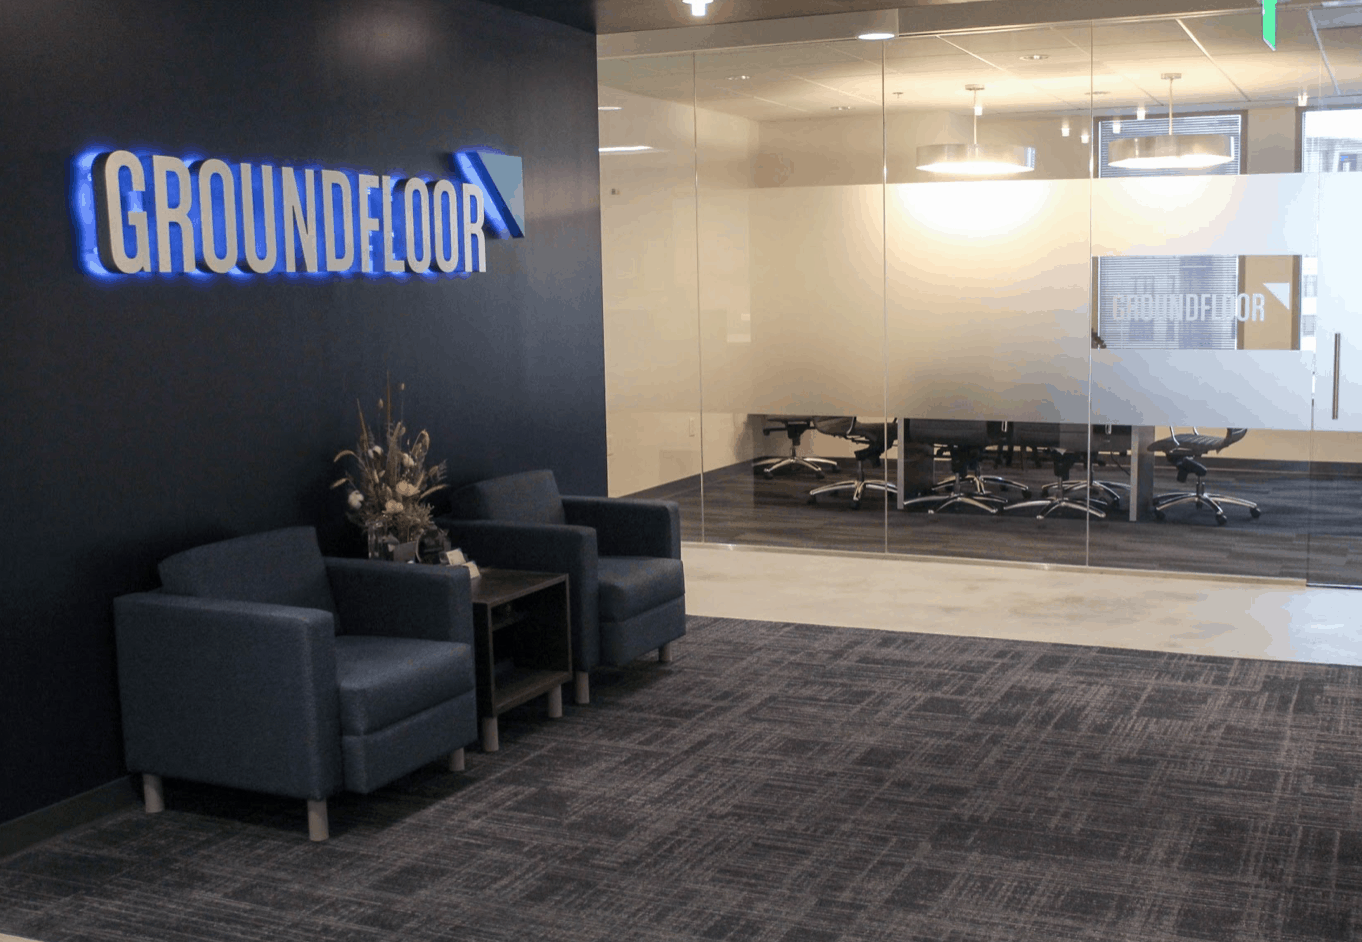 Groundfloor Announces First Quarter 2019 Results: Doubles Year Over Year Revenue